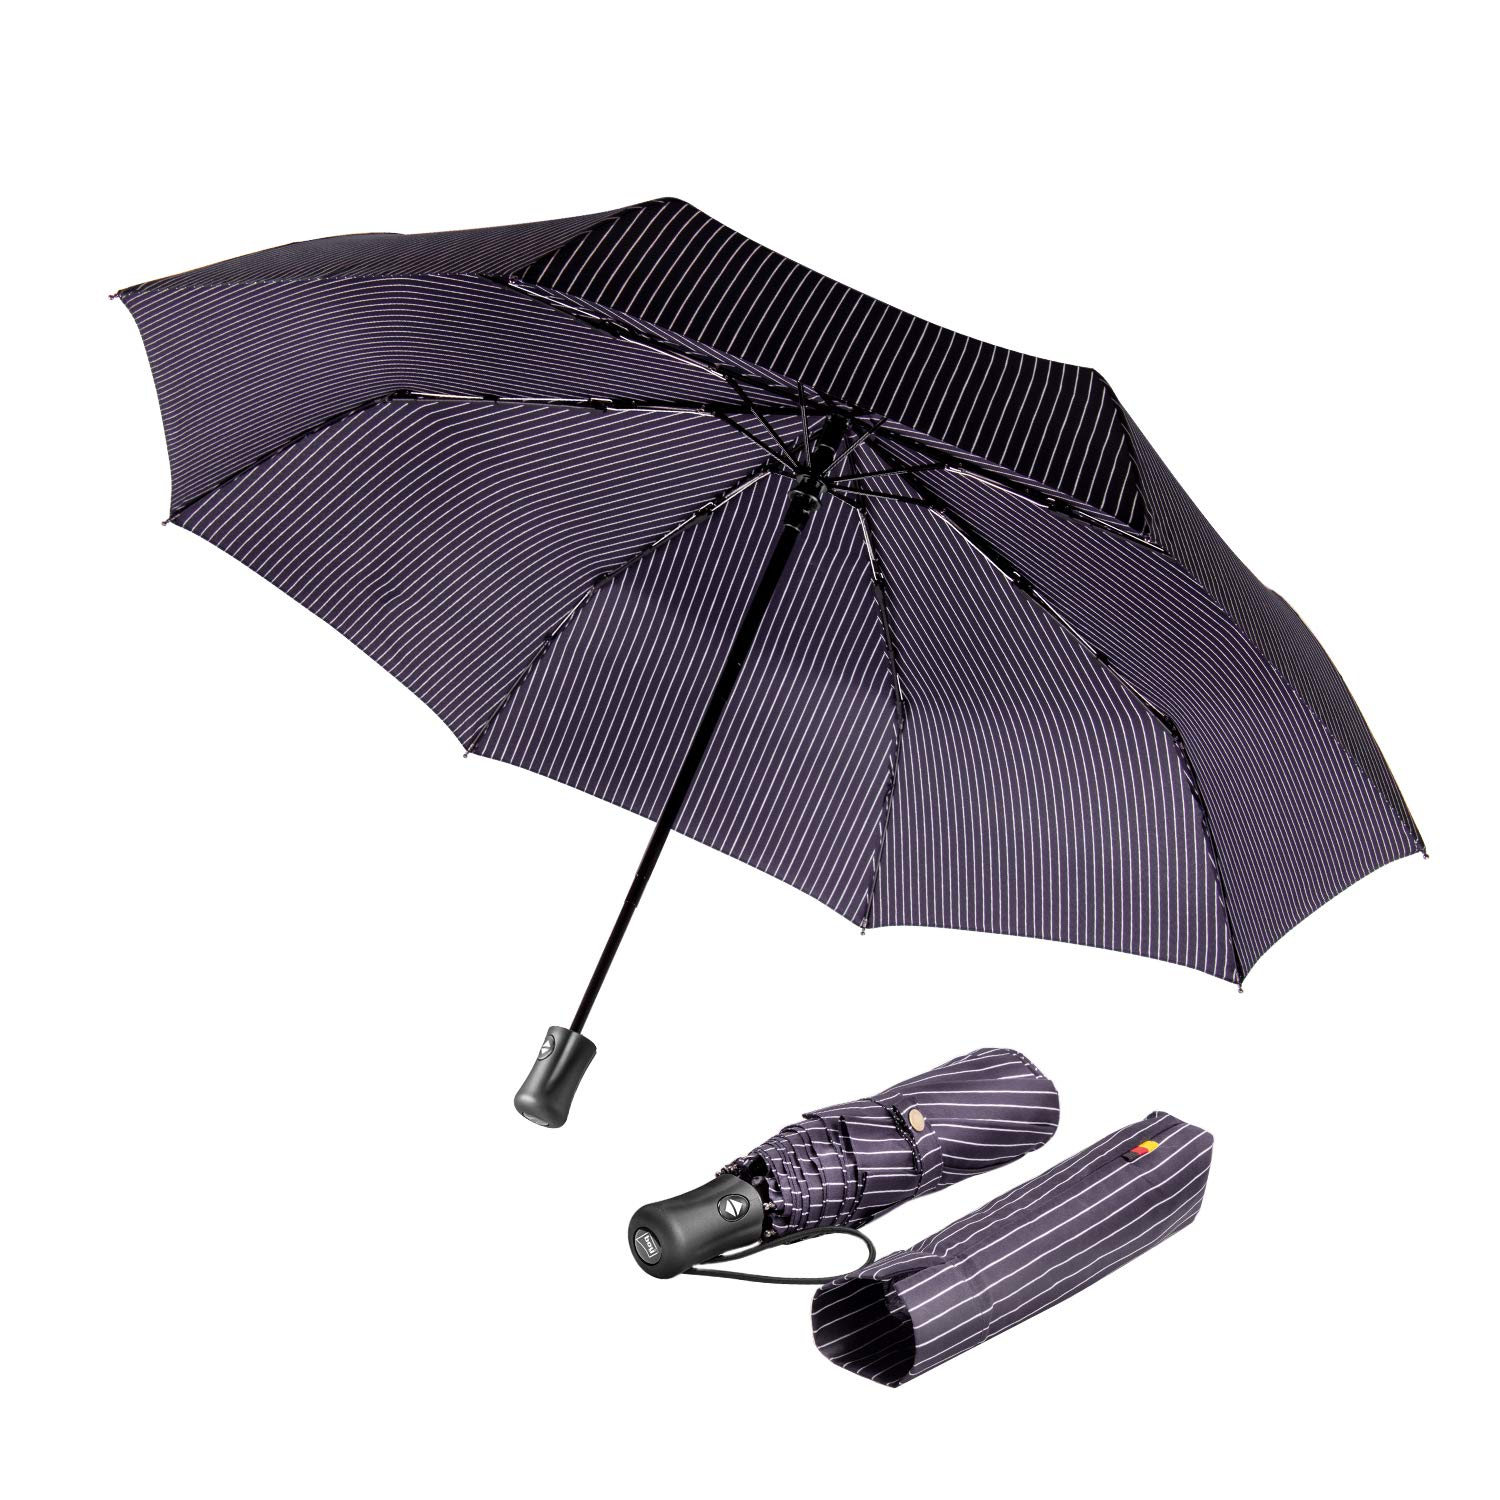 boy® Automatic Umbrella Compact, Travel Umbrella Windproof Waterproof, Extra Strong Umbrella with Reinforced Windproof Frame, Portable Umbrella for Women and Men TW3014S-107